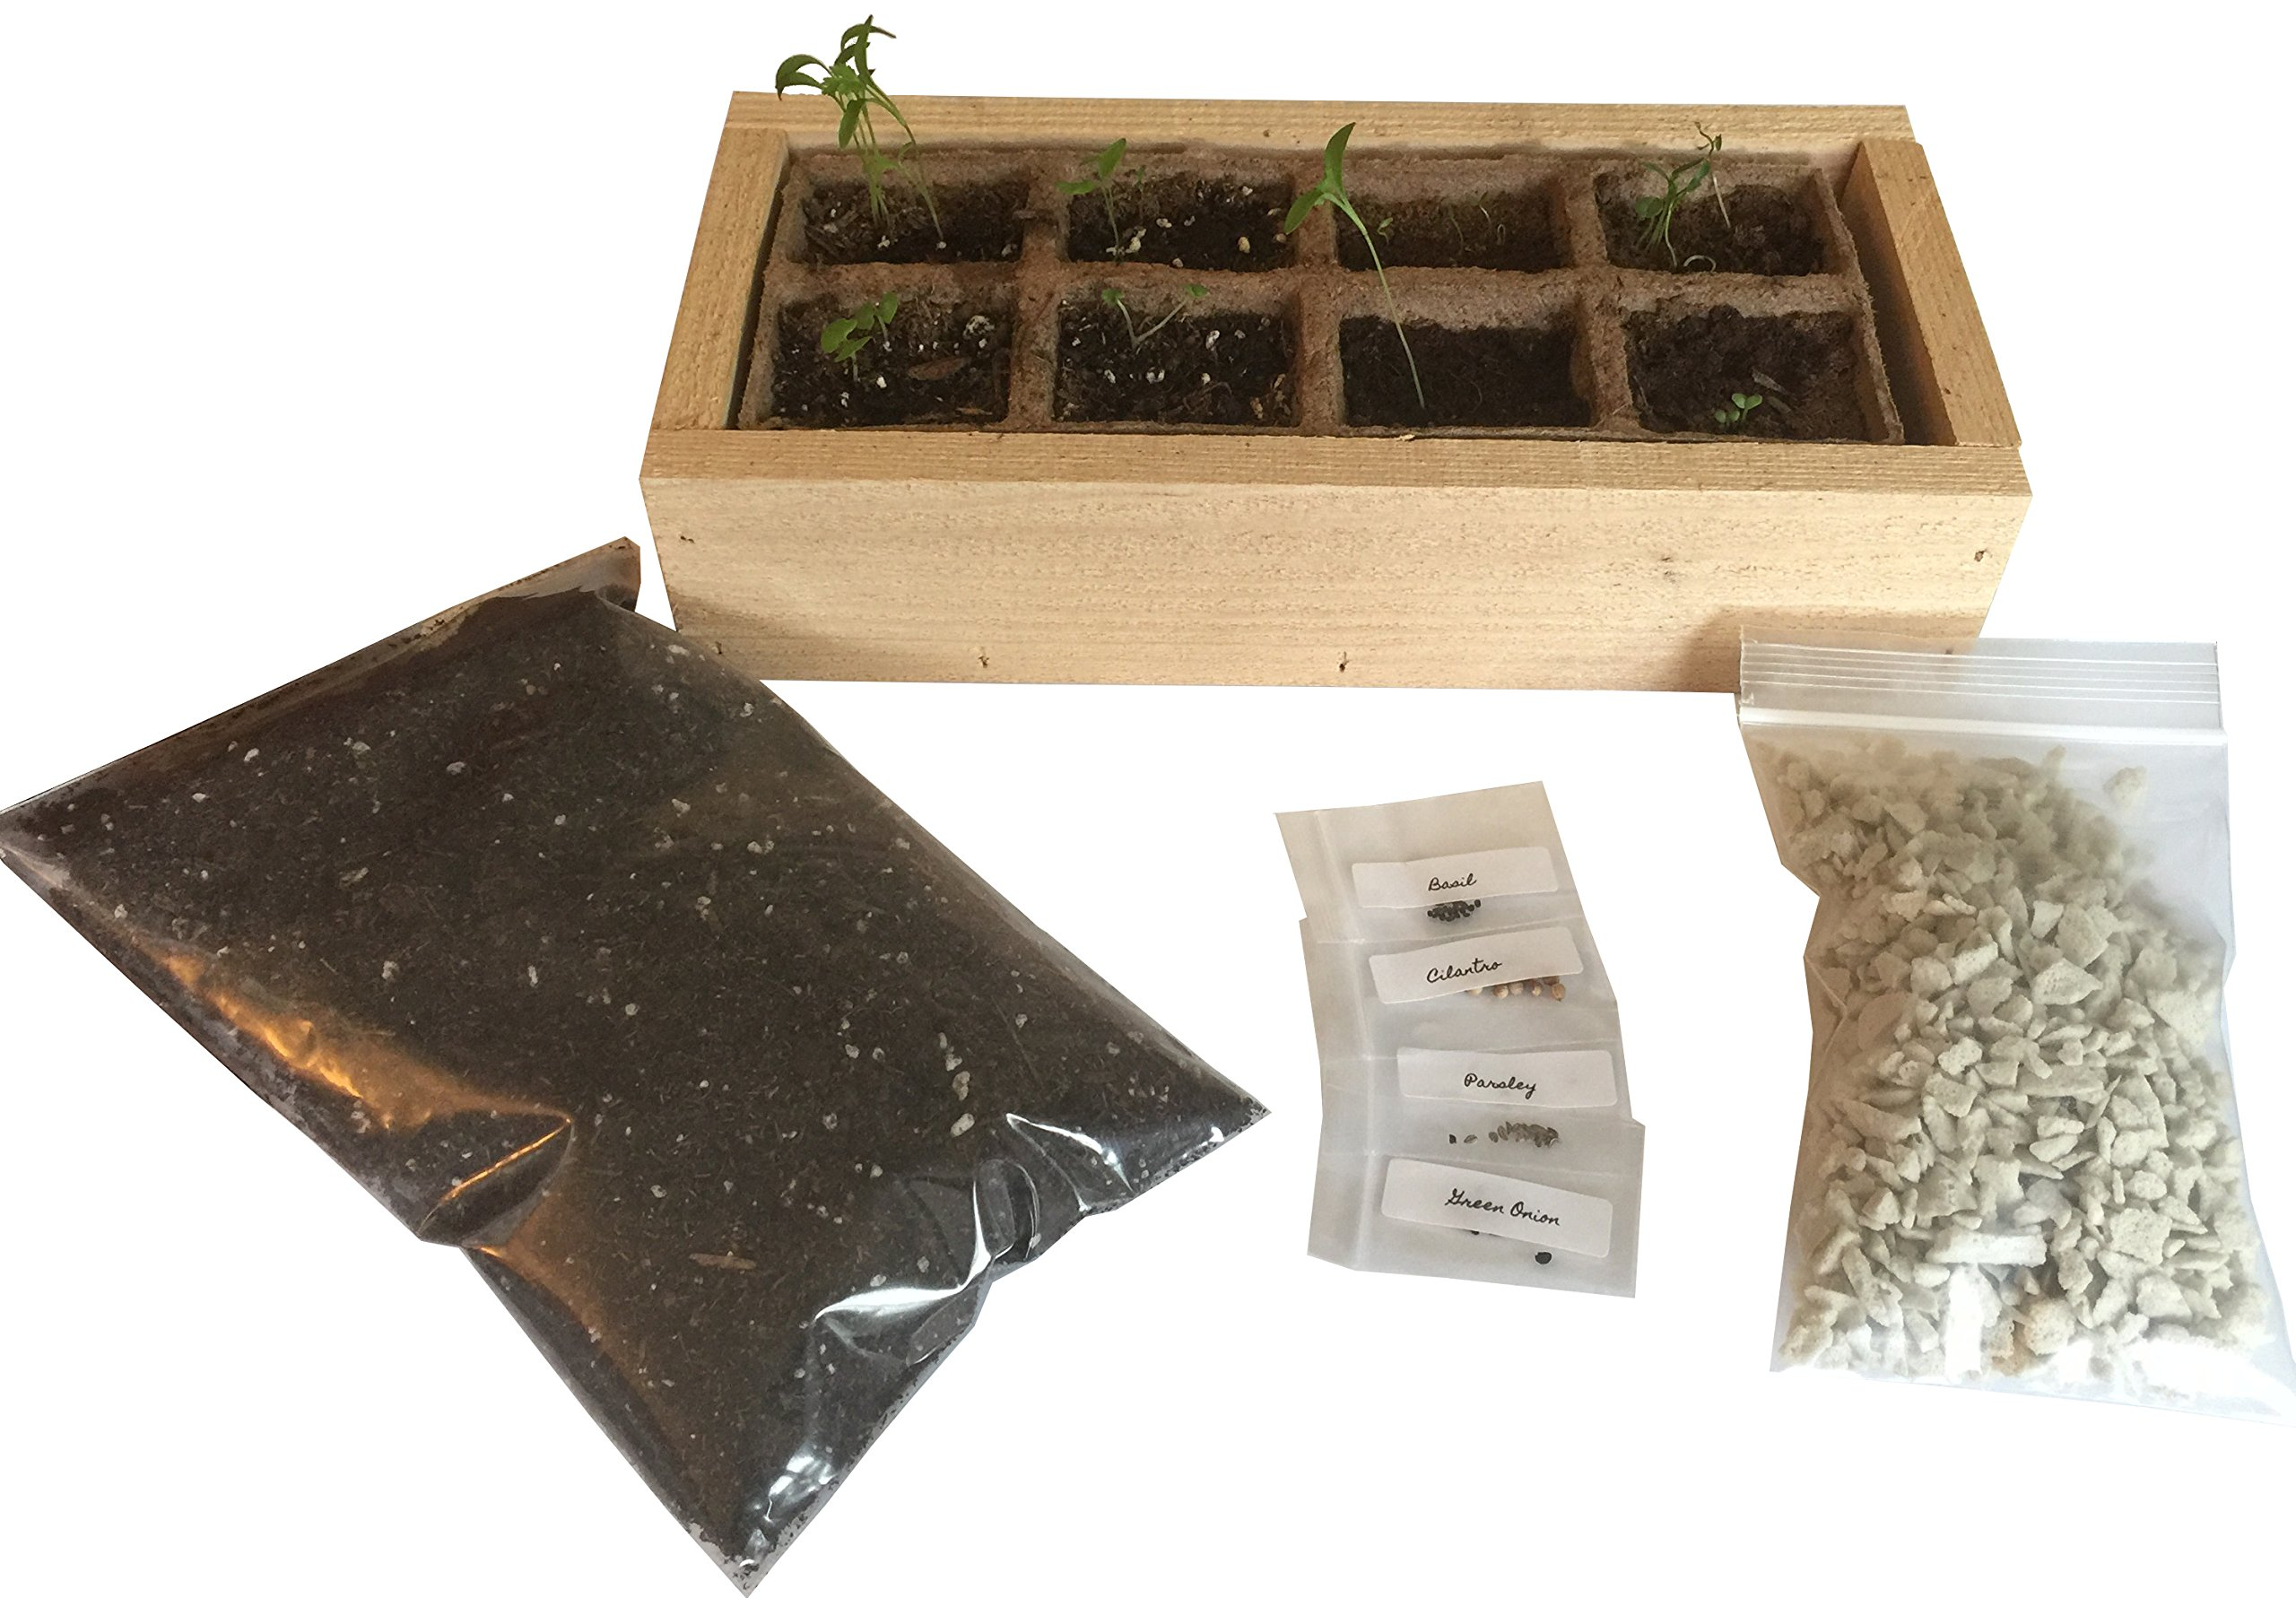 Herb Garden Starter Kit - Includes All You Need to Start Growing Herbs the Day it Arrives - Cilantro, Basil, Parsely, Thyme (Natural-Cedar)